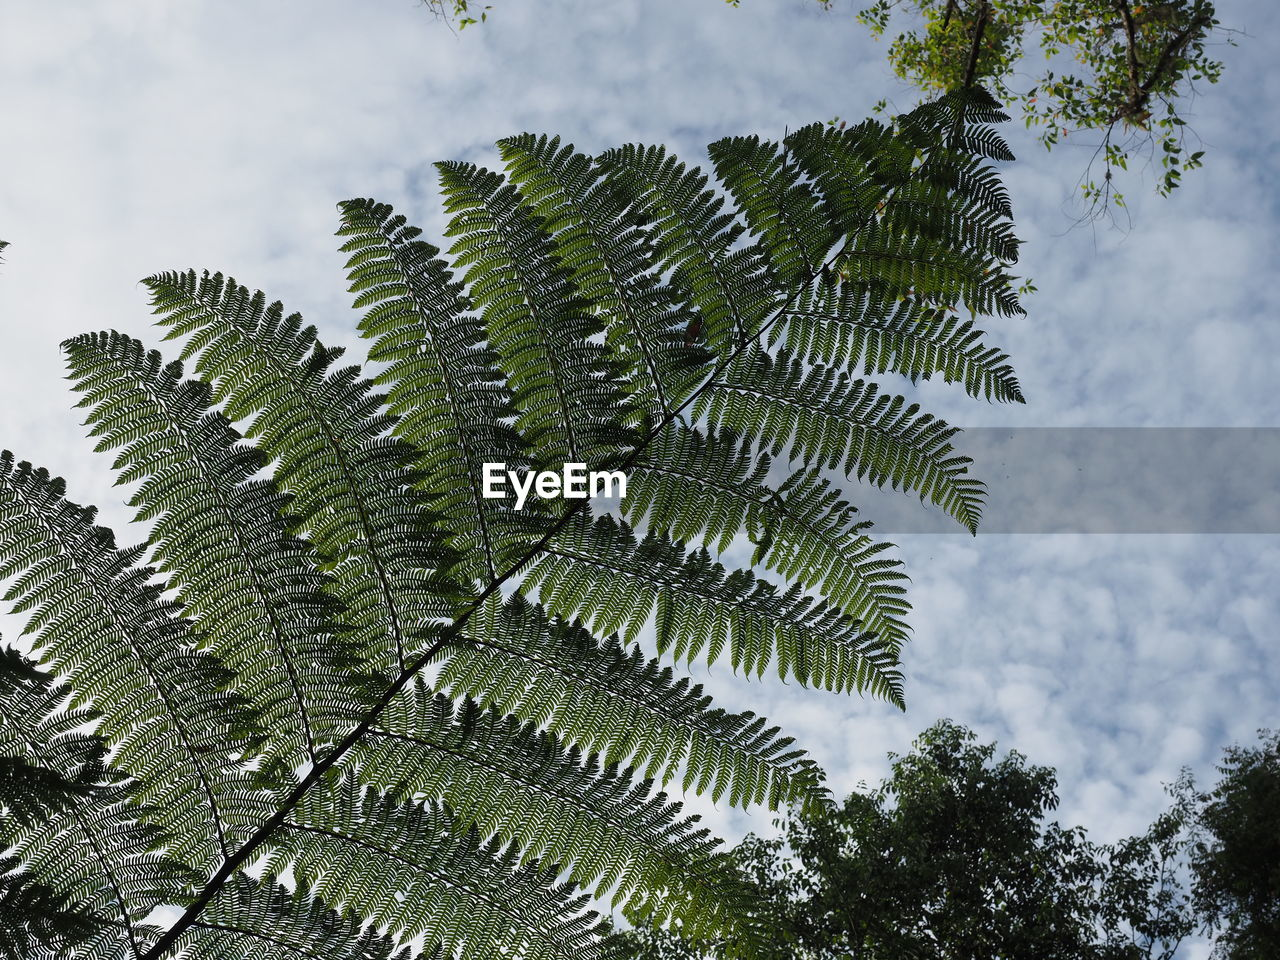 plant, tree, growth, leaf, plant part, beauty in nature, green color, nature, no people, day, sky, low angle view, outdoors, close-up, fern, tranquility, branch, leaves, focus on foreground, botany, palm leaf